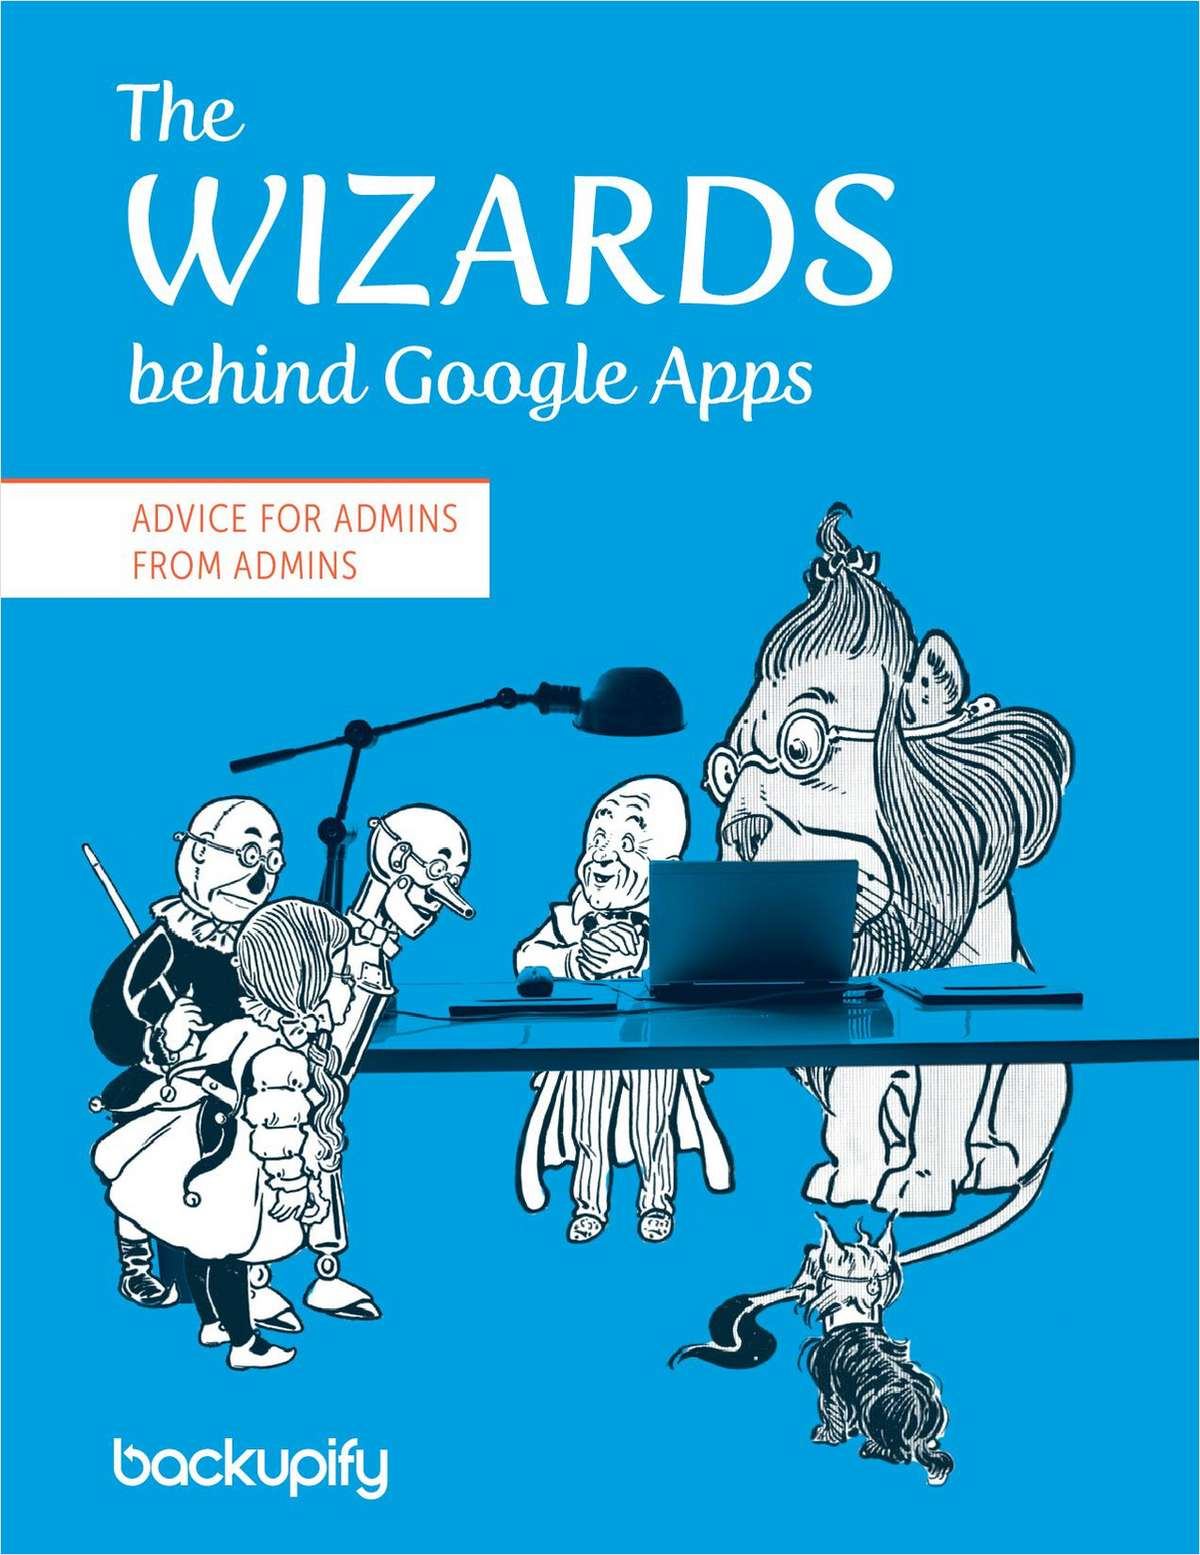 The Wizards of Google Apps - Tips for Admins from Admins